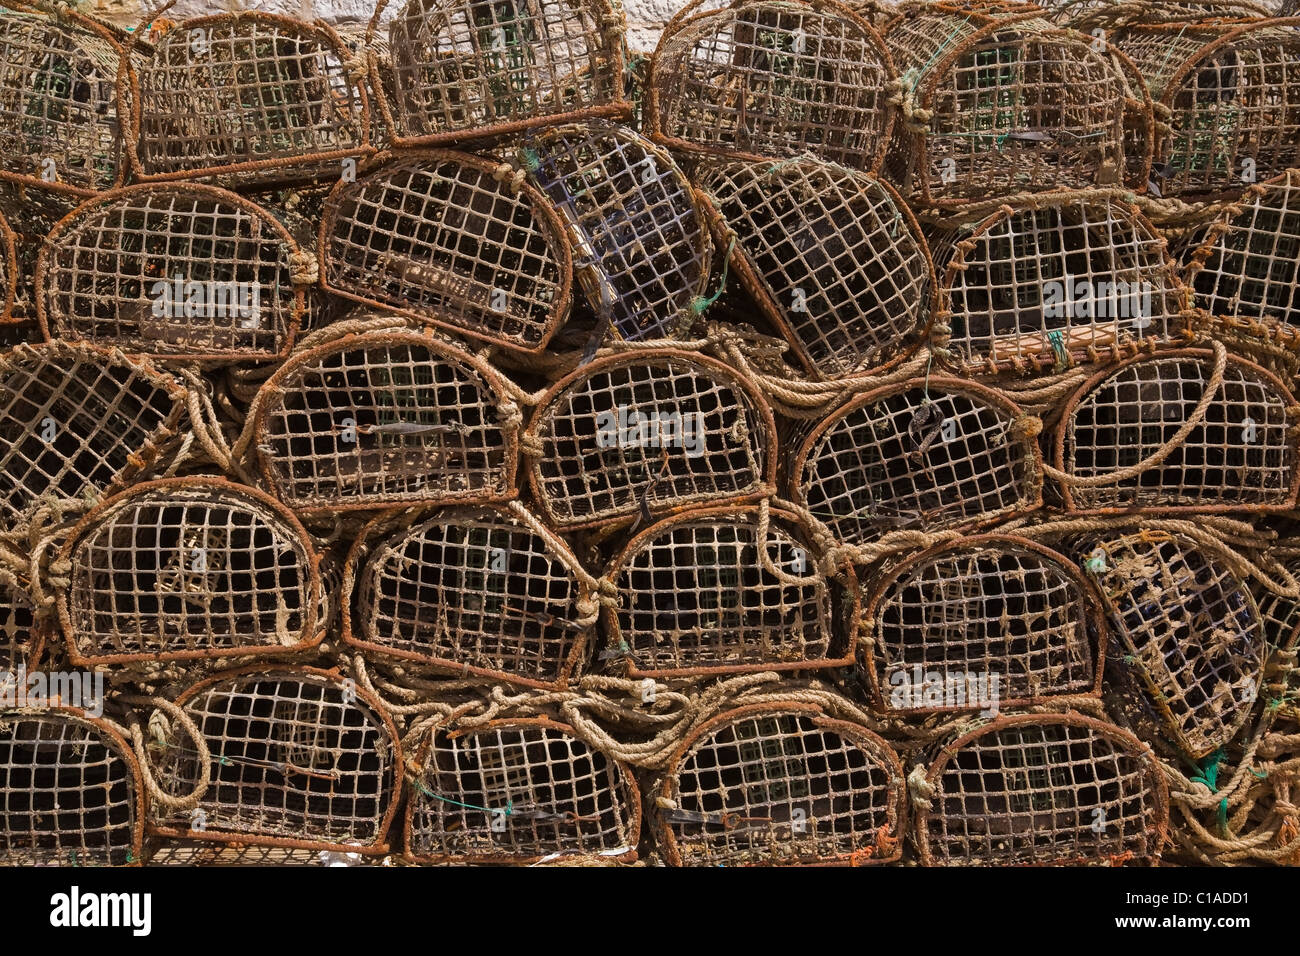 Stacks of commercial crab fishing baskets, Portugal - Stock Image